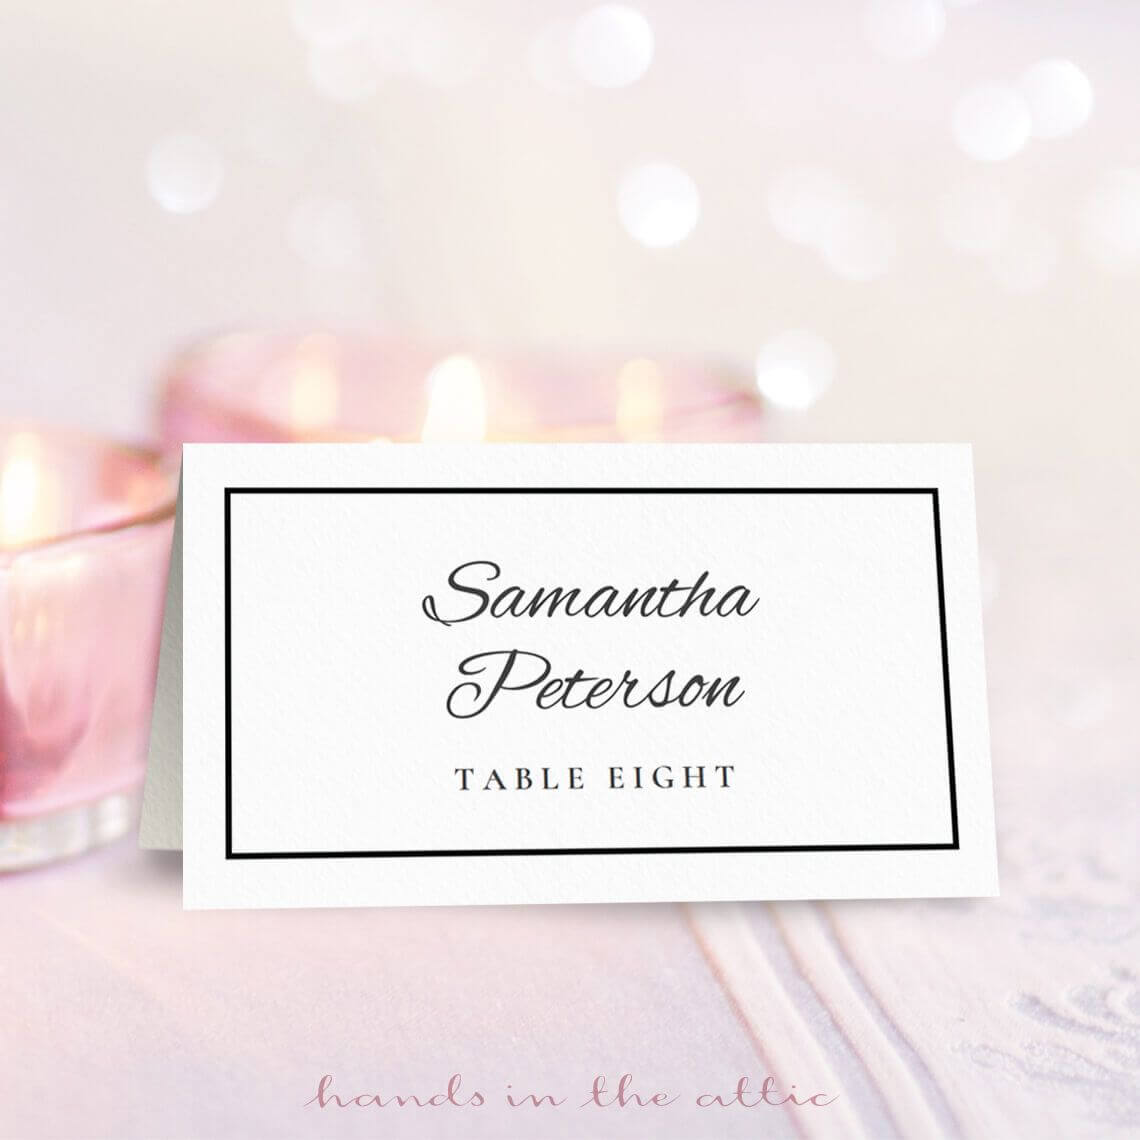 Wedding Place Card Template | Free On Handsintheattic Pertaining To Table Name Card Template